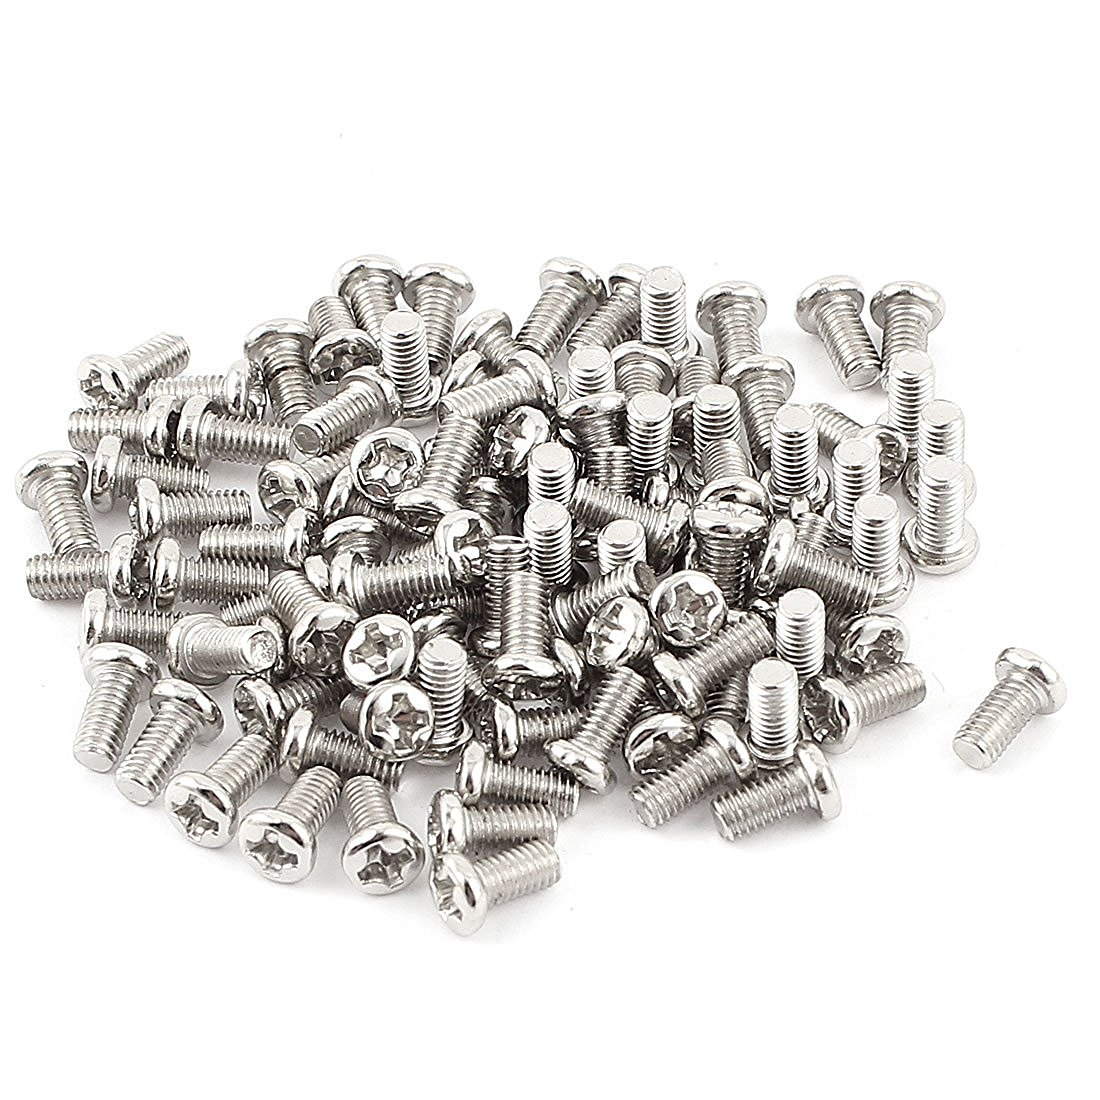 100pcs <font><b>M3x6mm</b></font> Recessed Crosshead Cross Head Threaded Screw Fasten Bolt image